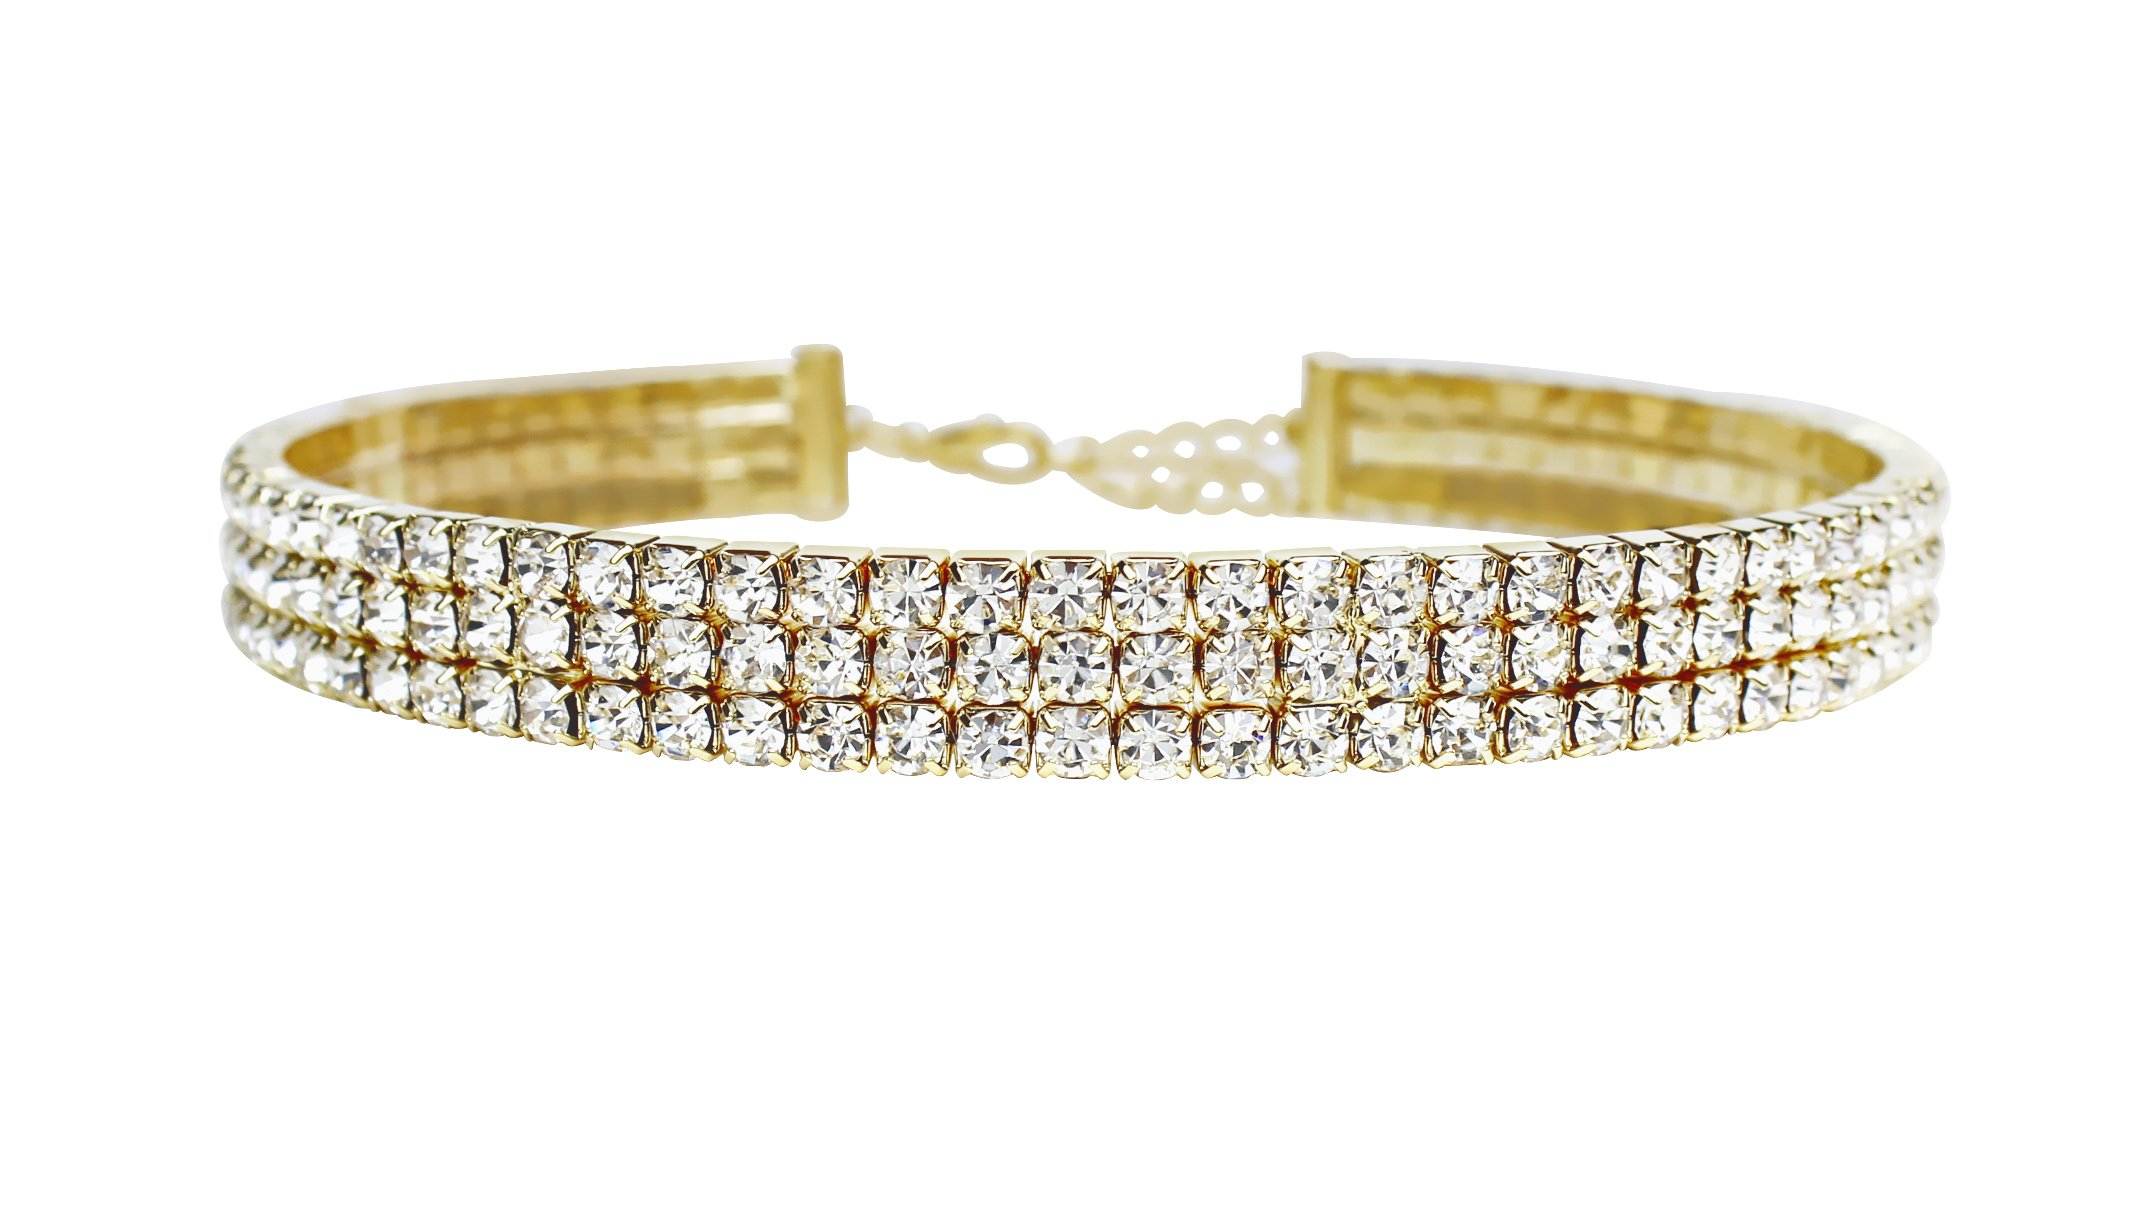 LuxeLife Gold Rhinestone Choker 3 Row by Women's Crystal Necklace Diamond Collar with 4'' Extender - Classic Fashion Jewelry Accessories – Matches Earrings, Bracelets and Rings Flawlessly